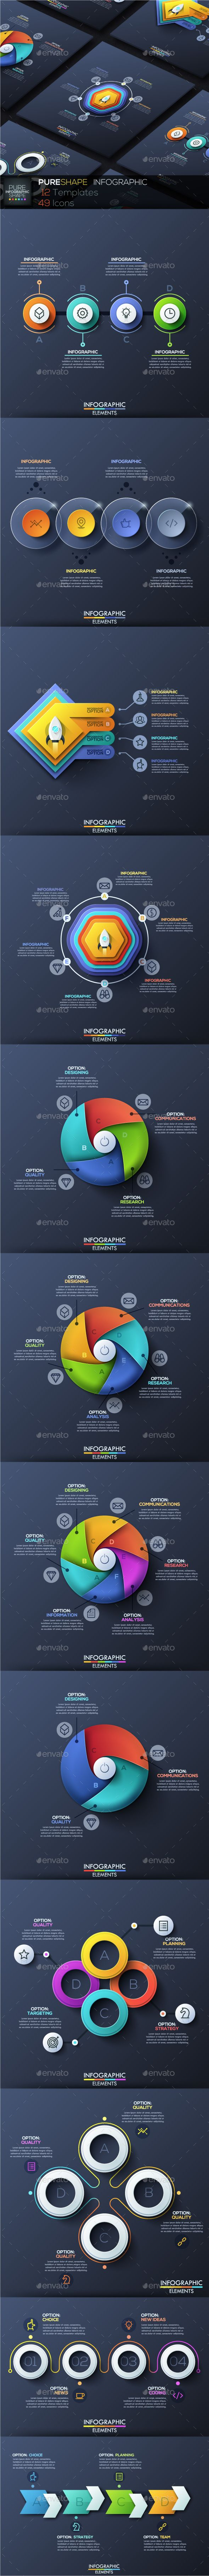 Pure Shape Infographic Templates PSD, Vector EPS, AI Illustrator